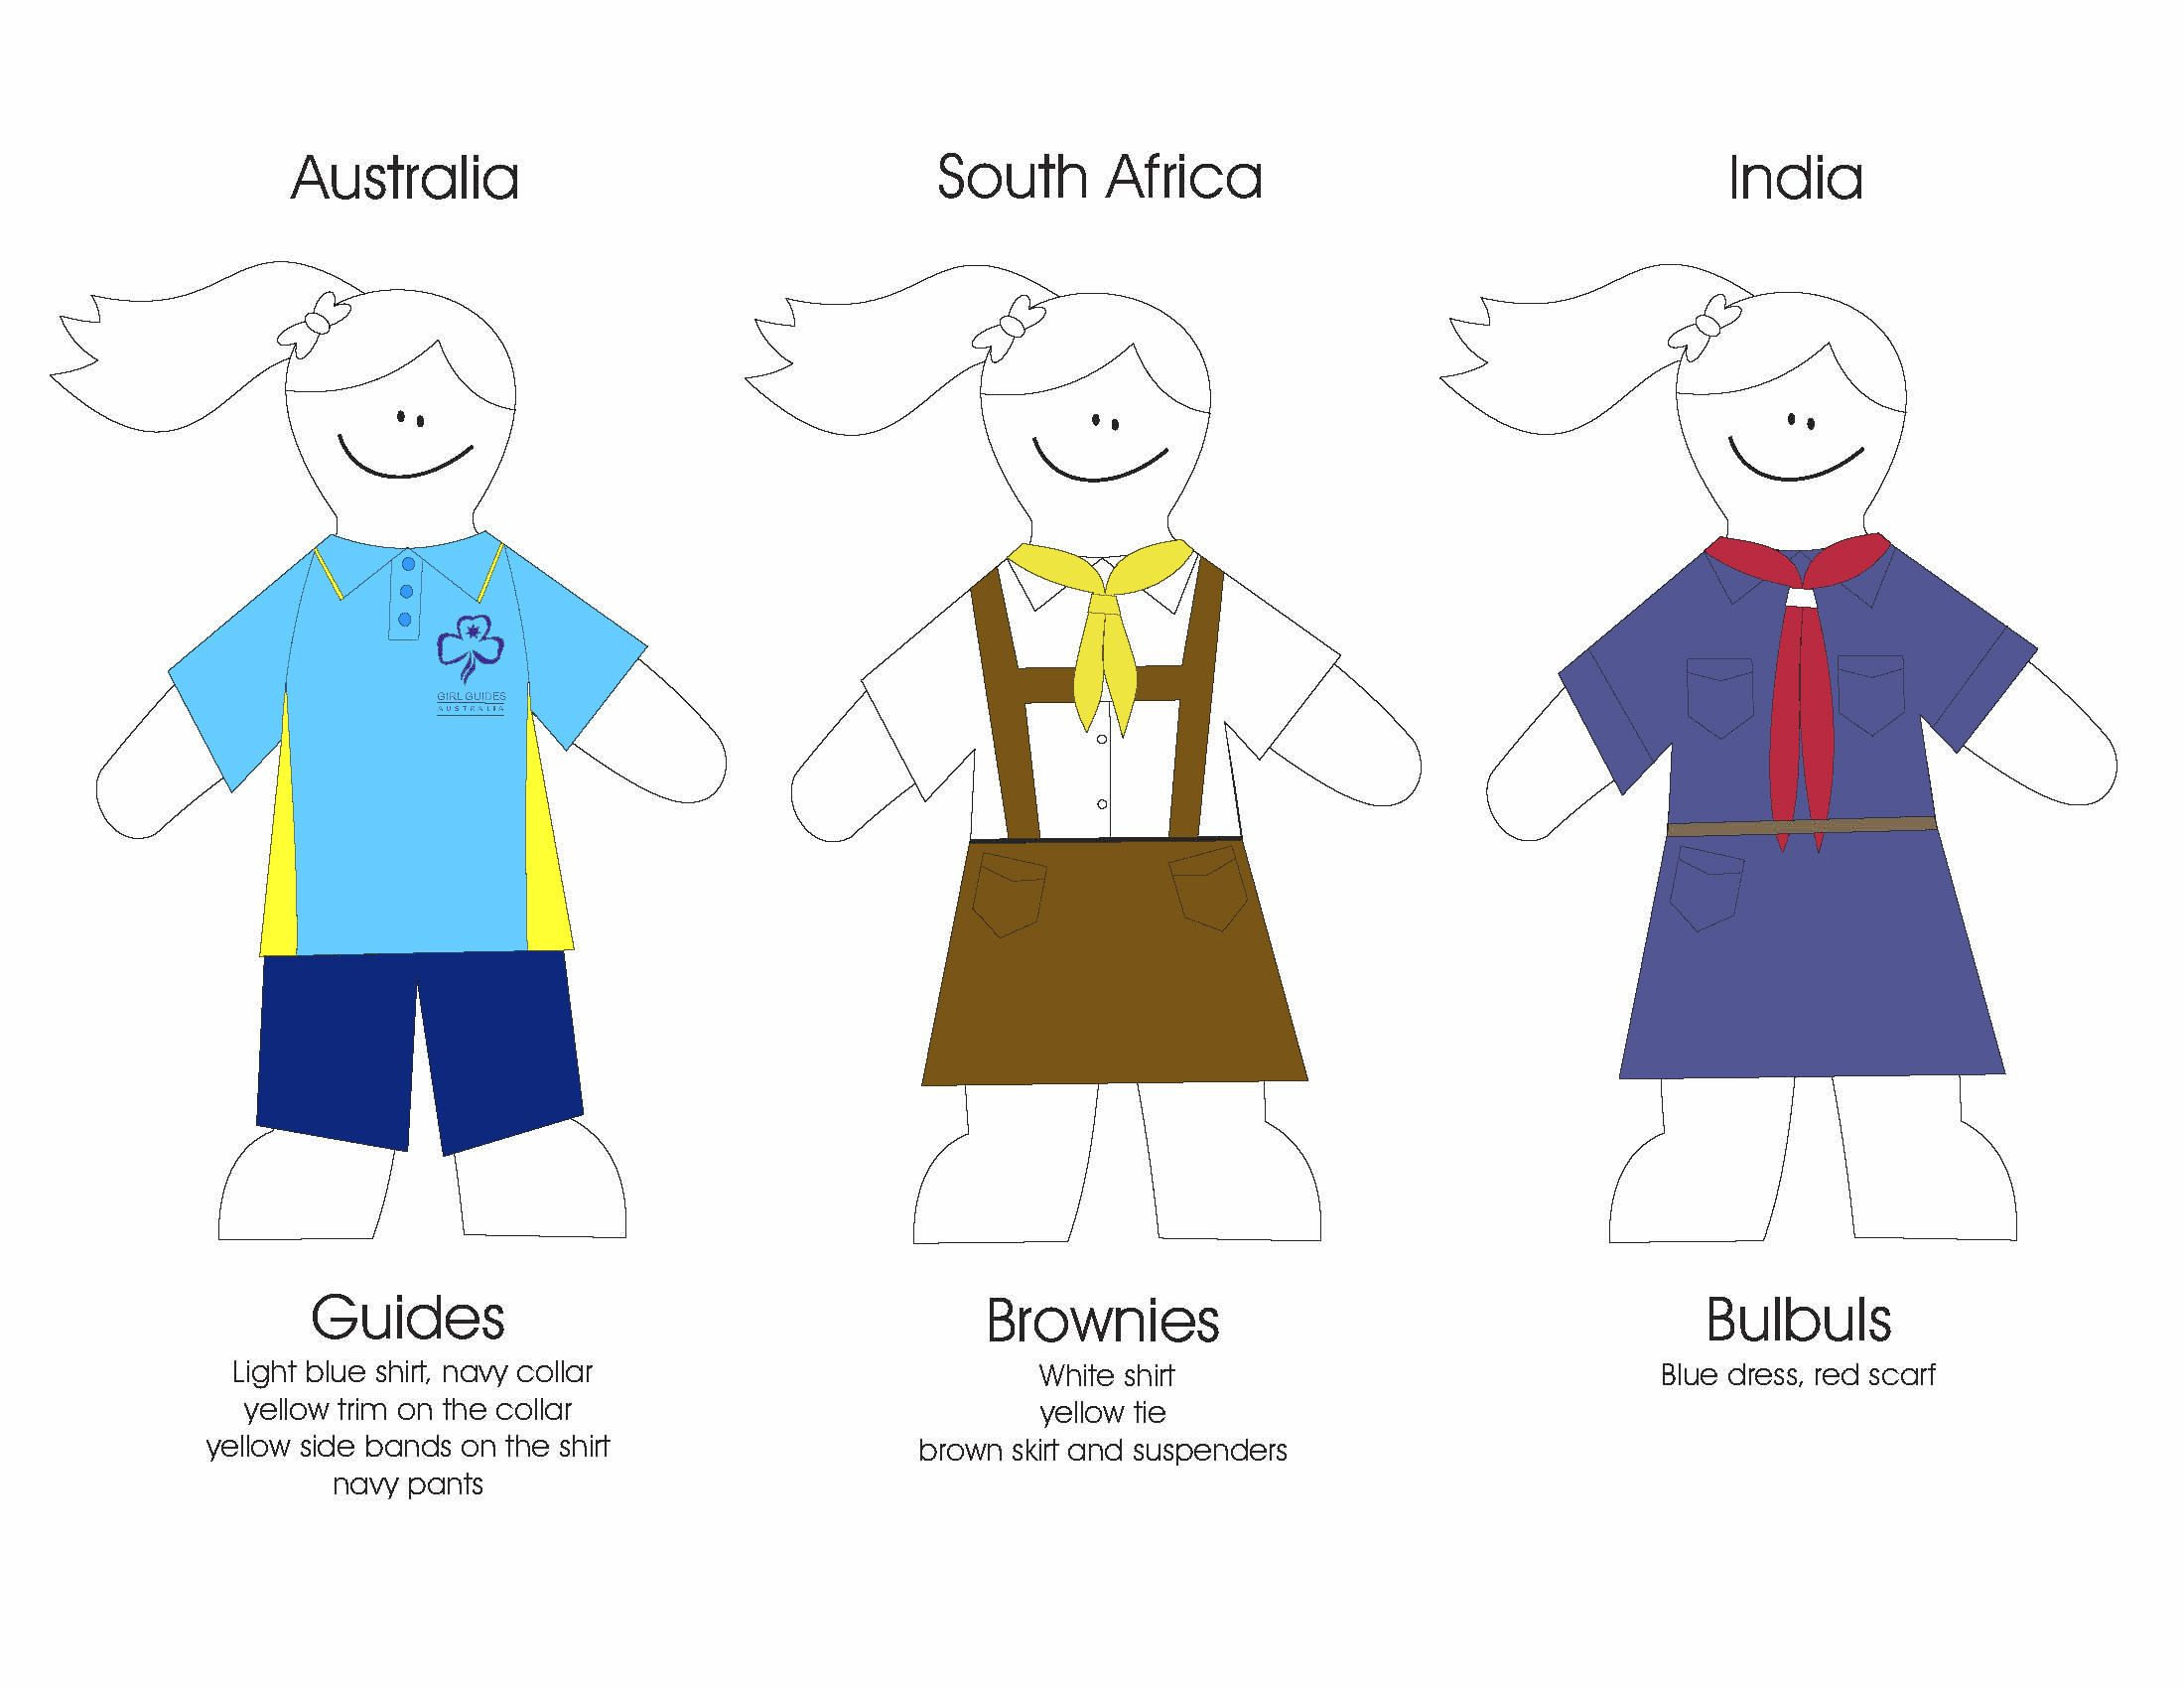 Brownie Uniforms From Other Countries